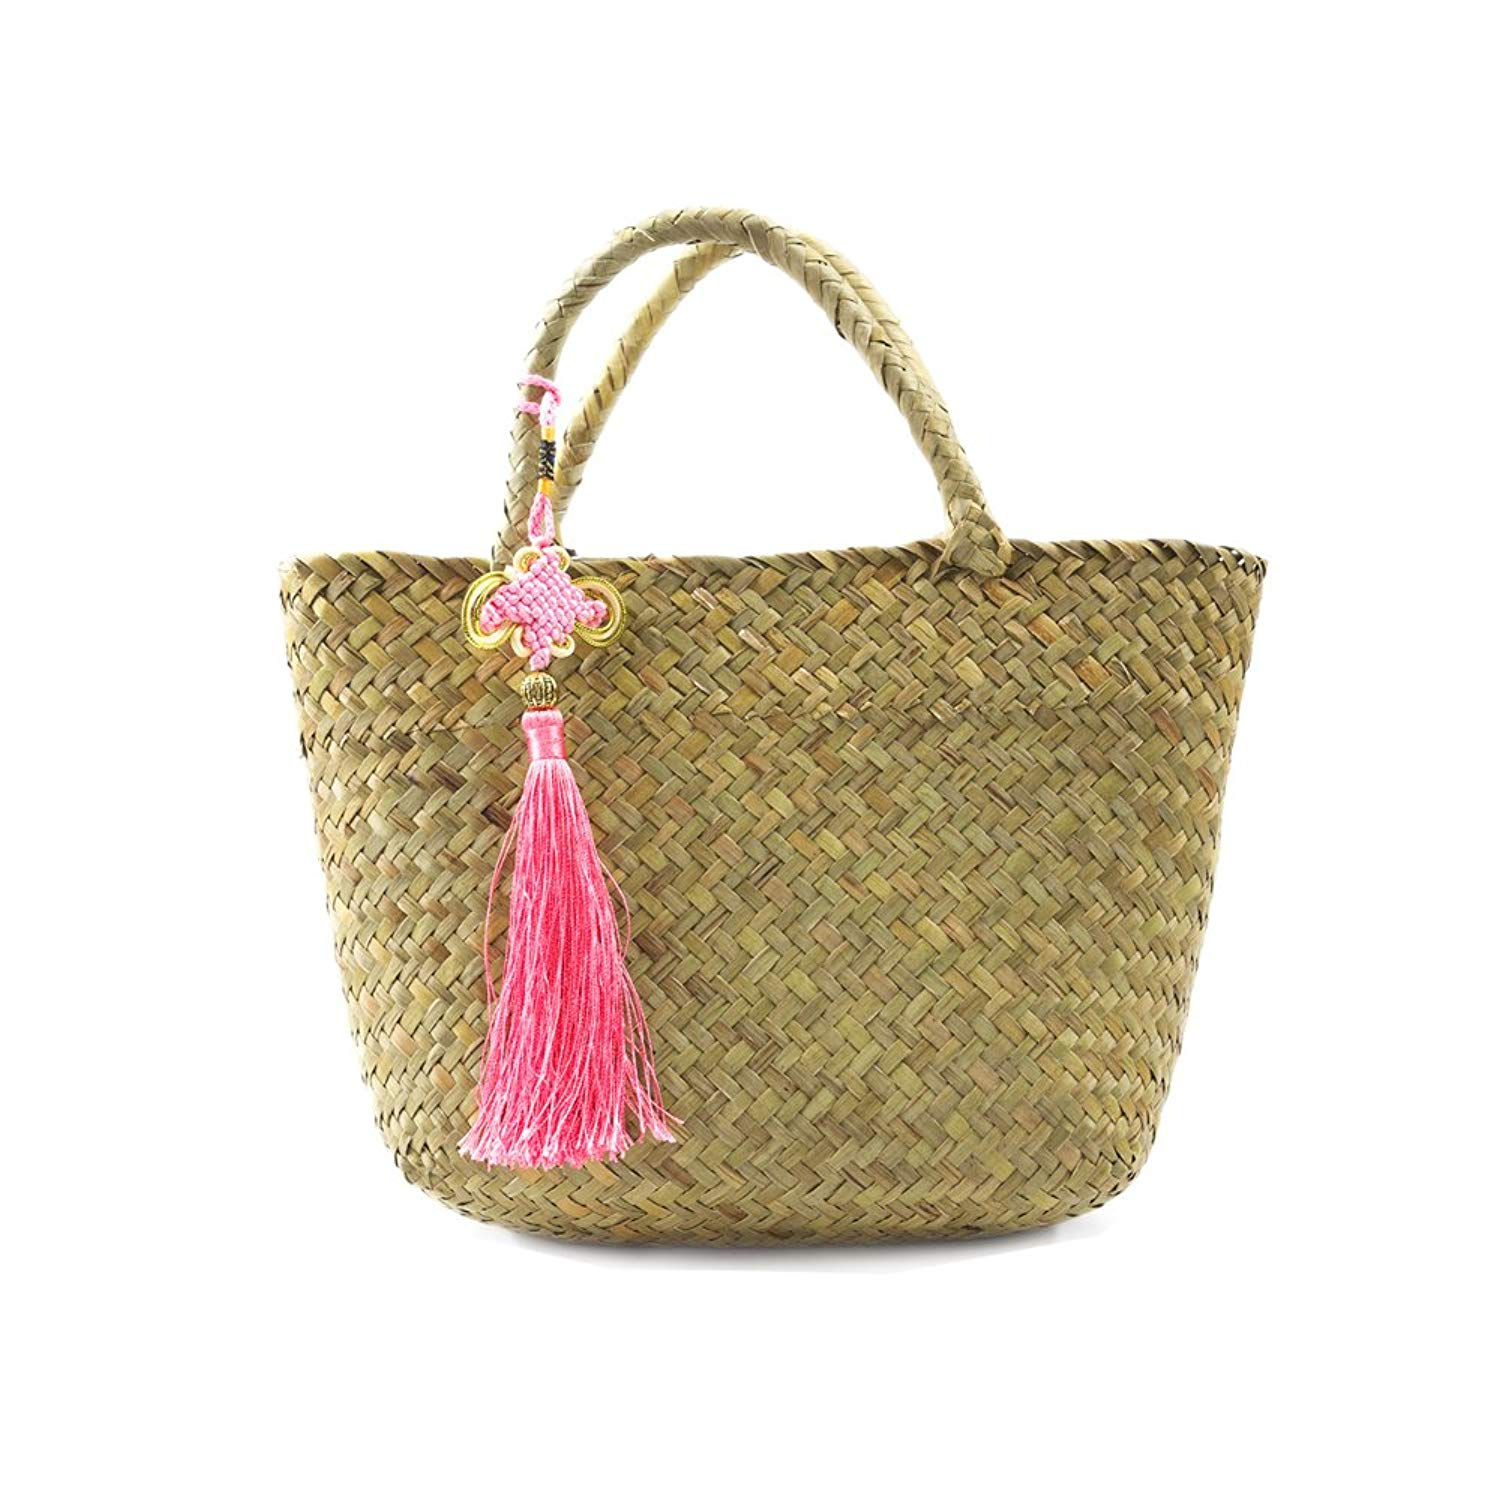 ba24384acc02 Get Quotations · Handmade Woven Straw Bags Rattan Small Womens Beach Bag  Handbags